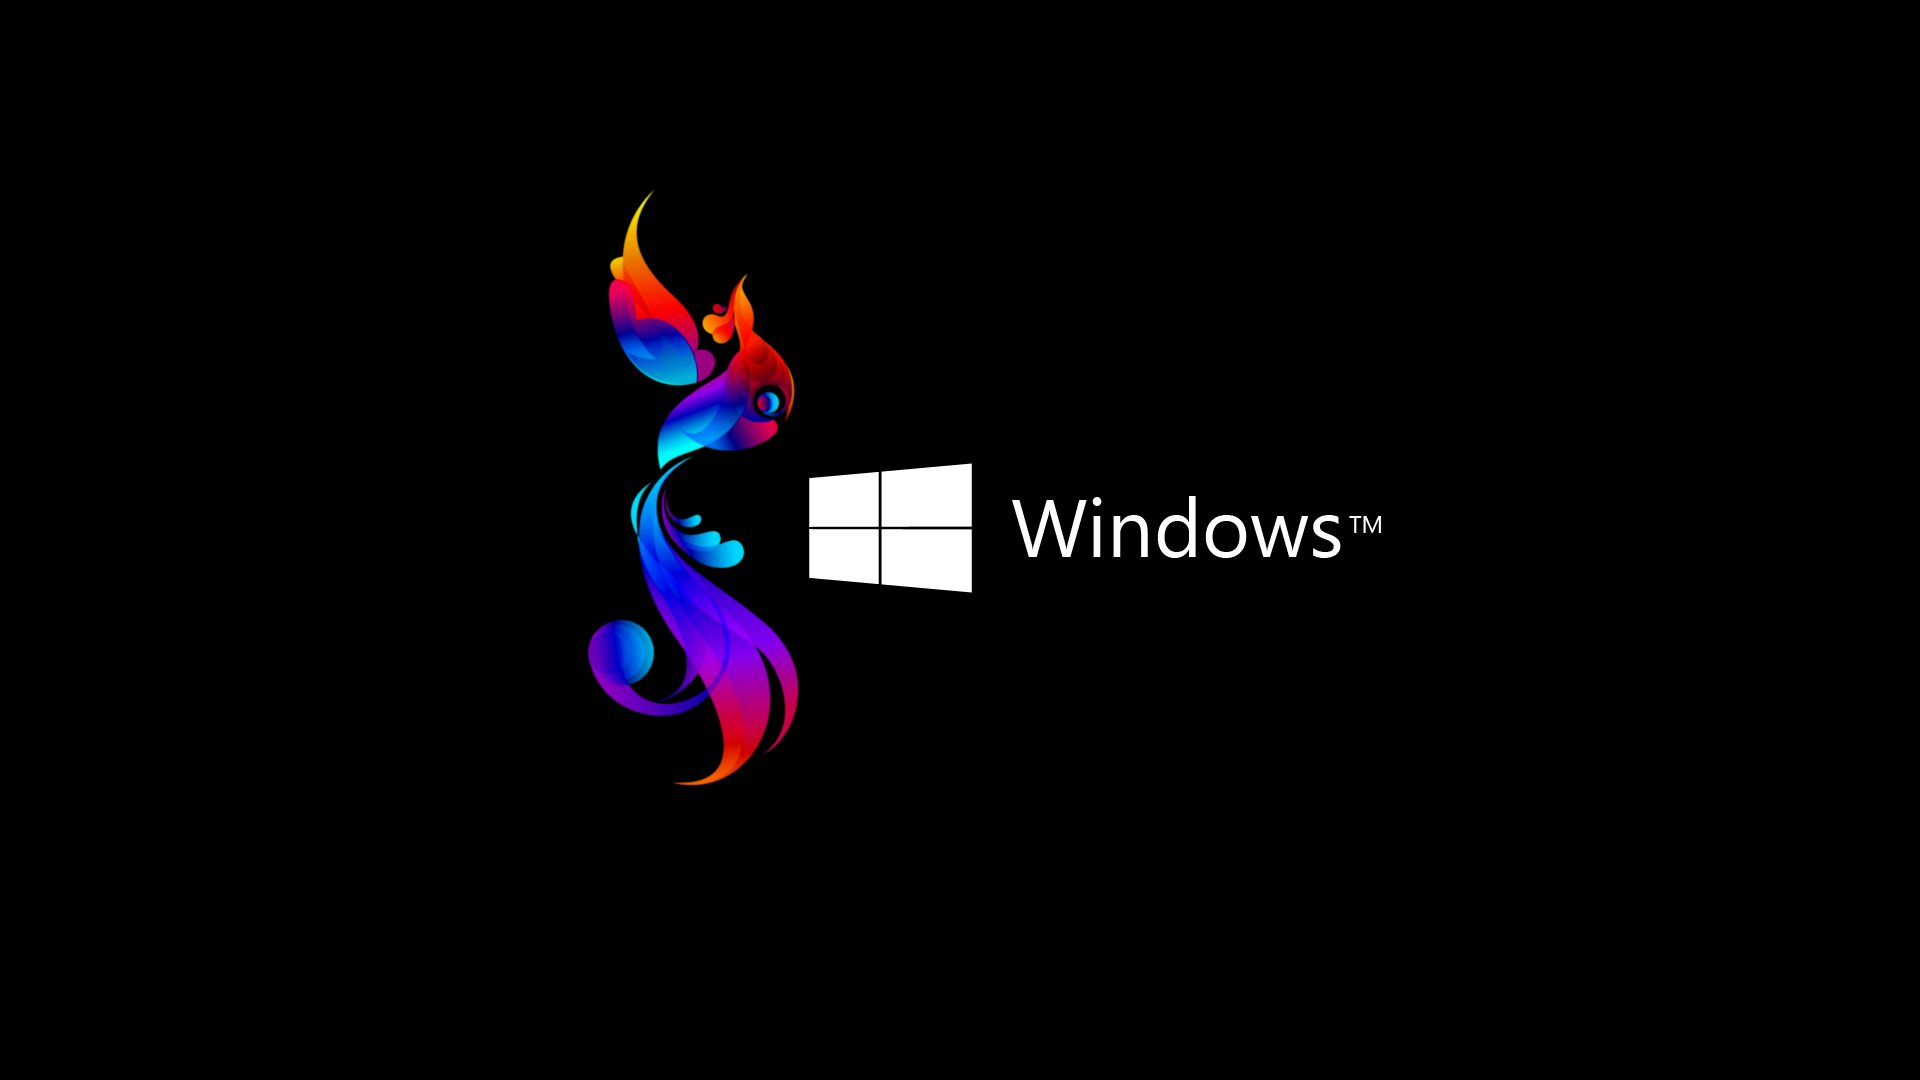 microsoft windows wallpapers hd wallpapers